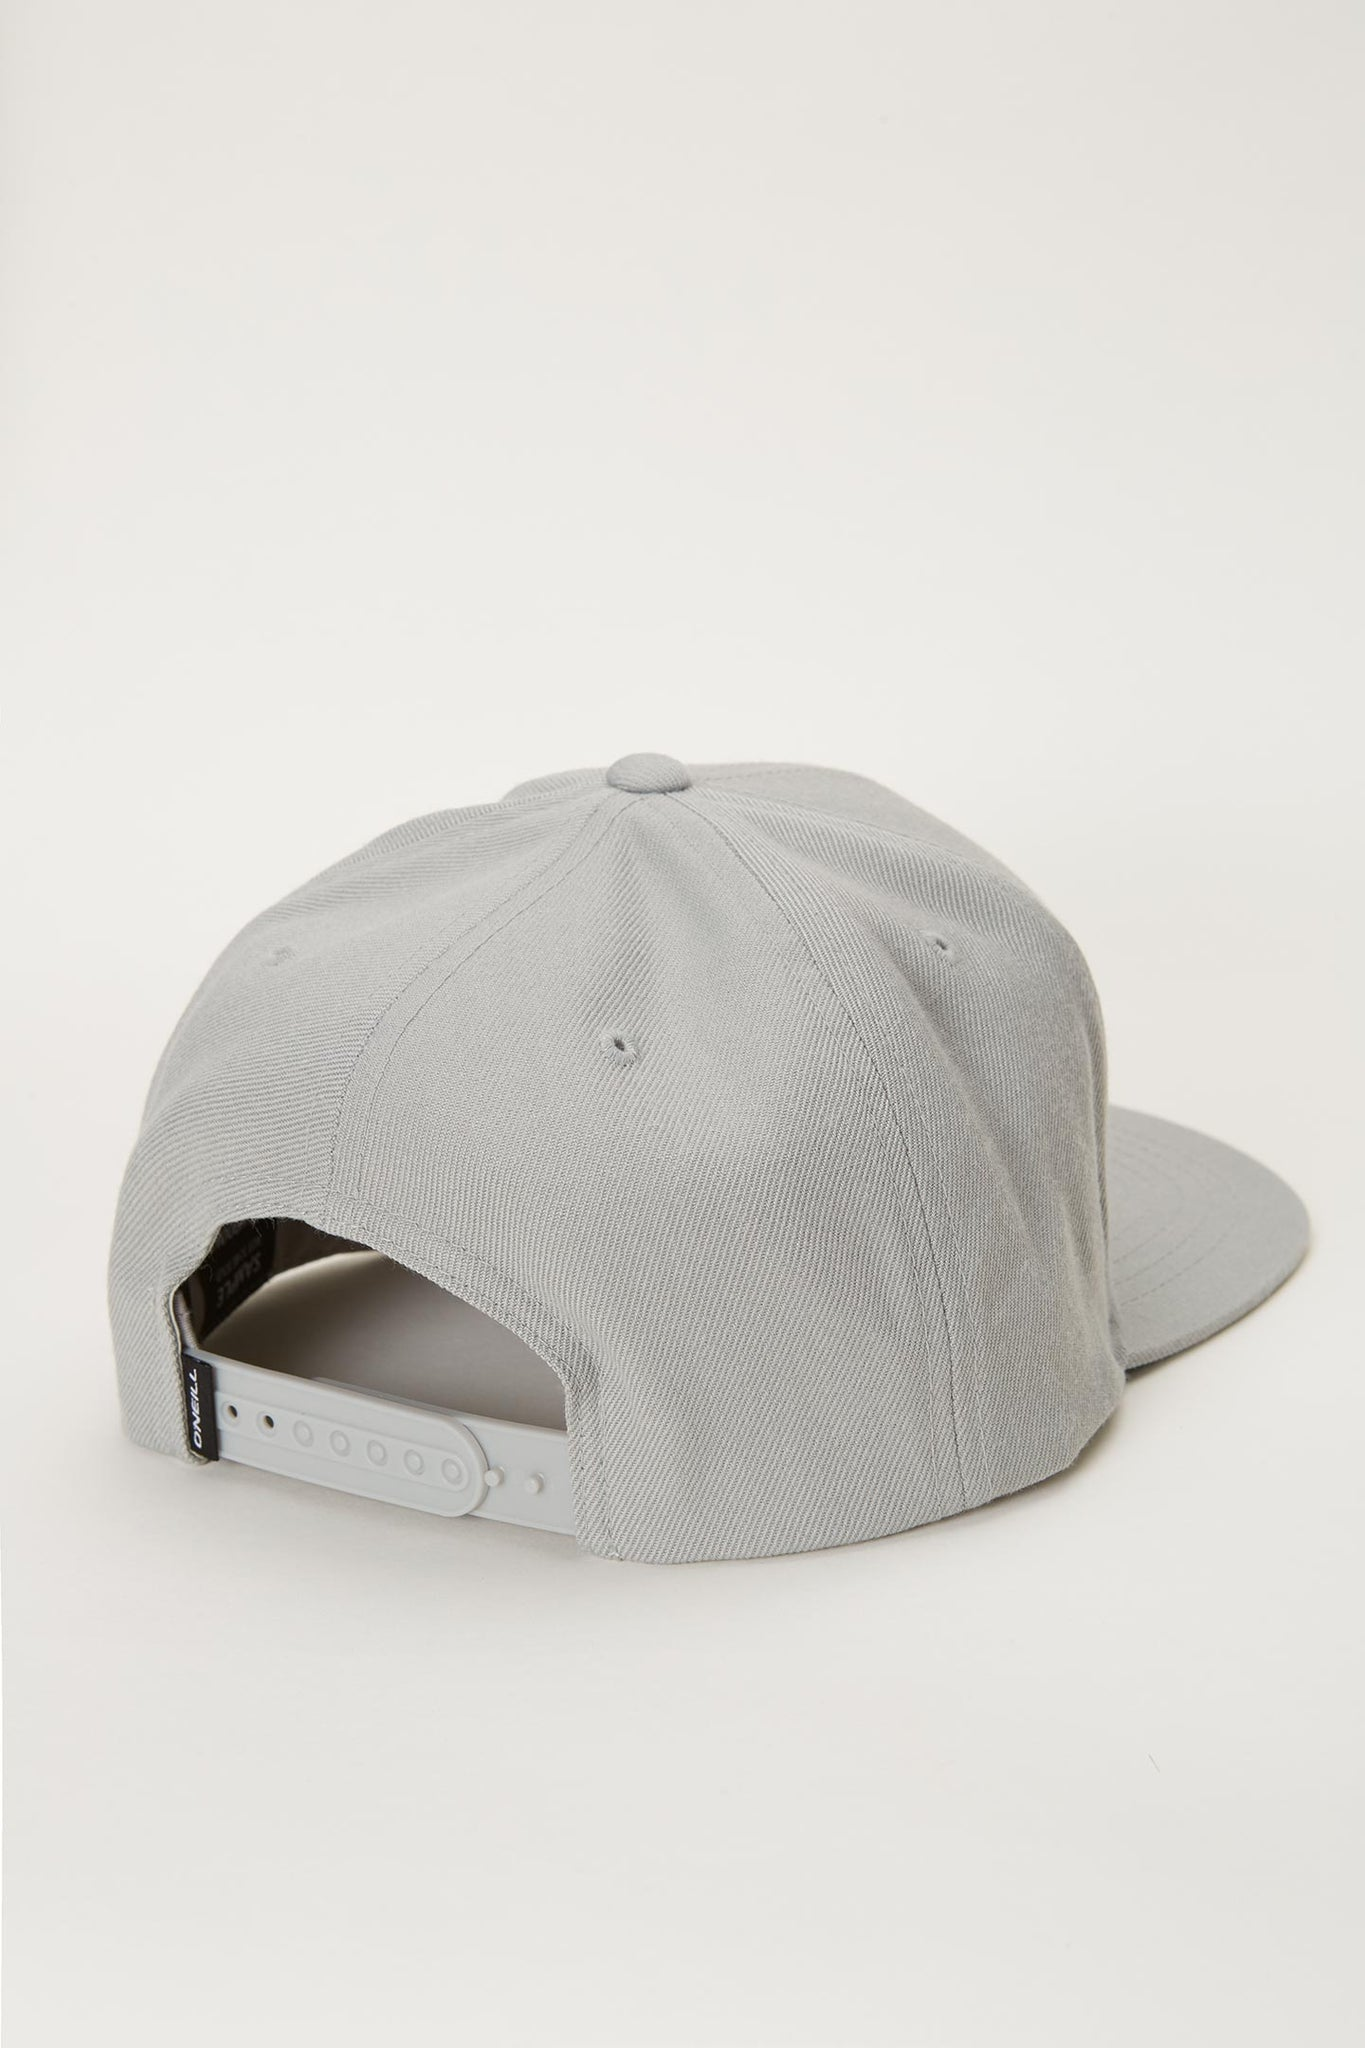 Houstons Boys Hat | O'Neill